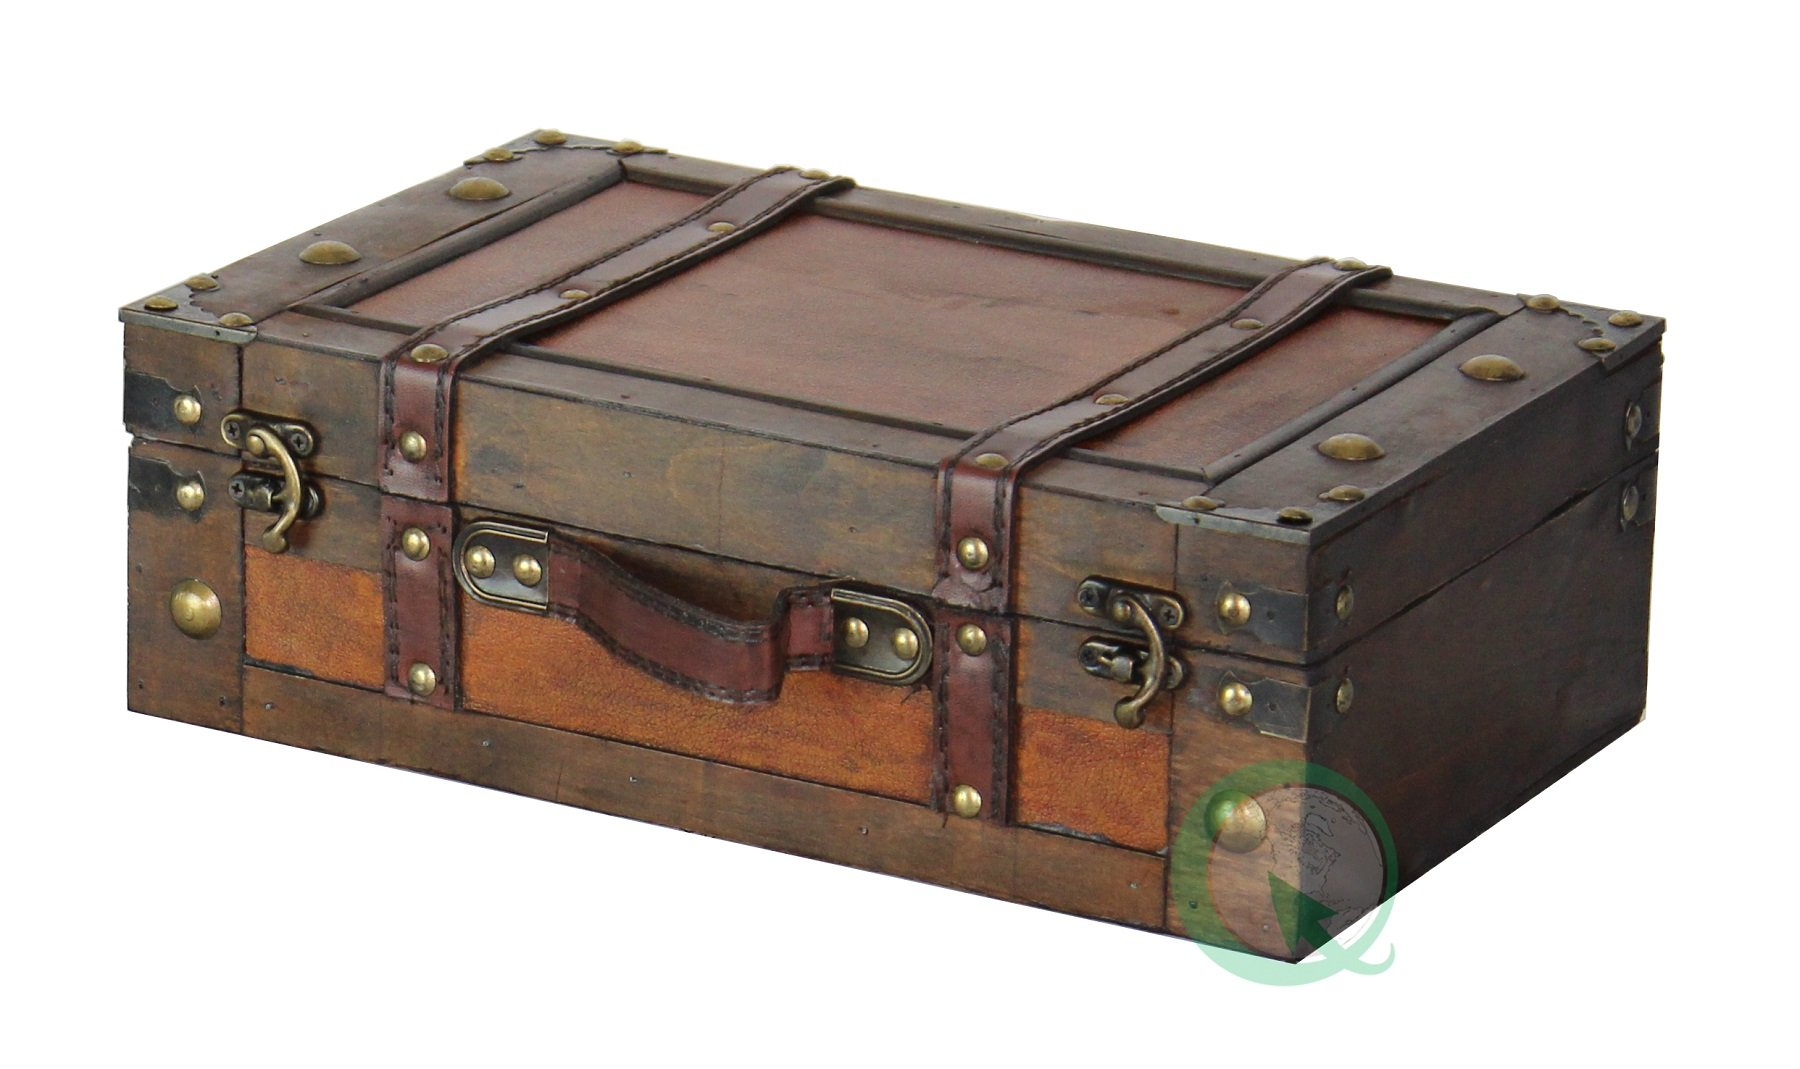 Vintage suitcase trunk train case wooden suitcase retro - Vintage suitcase ...